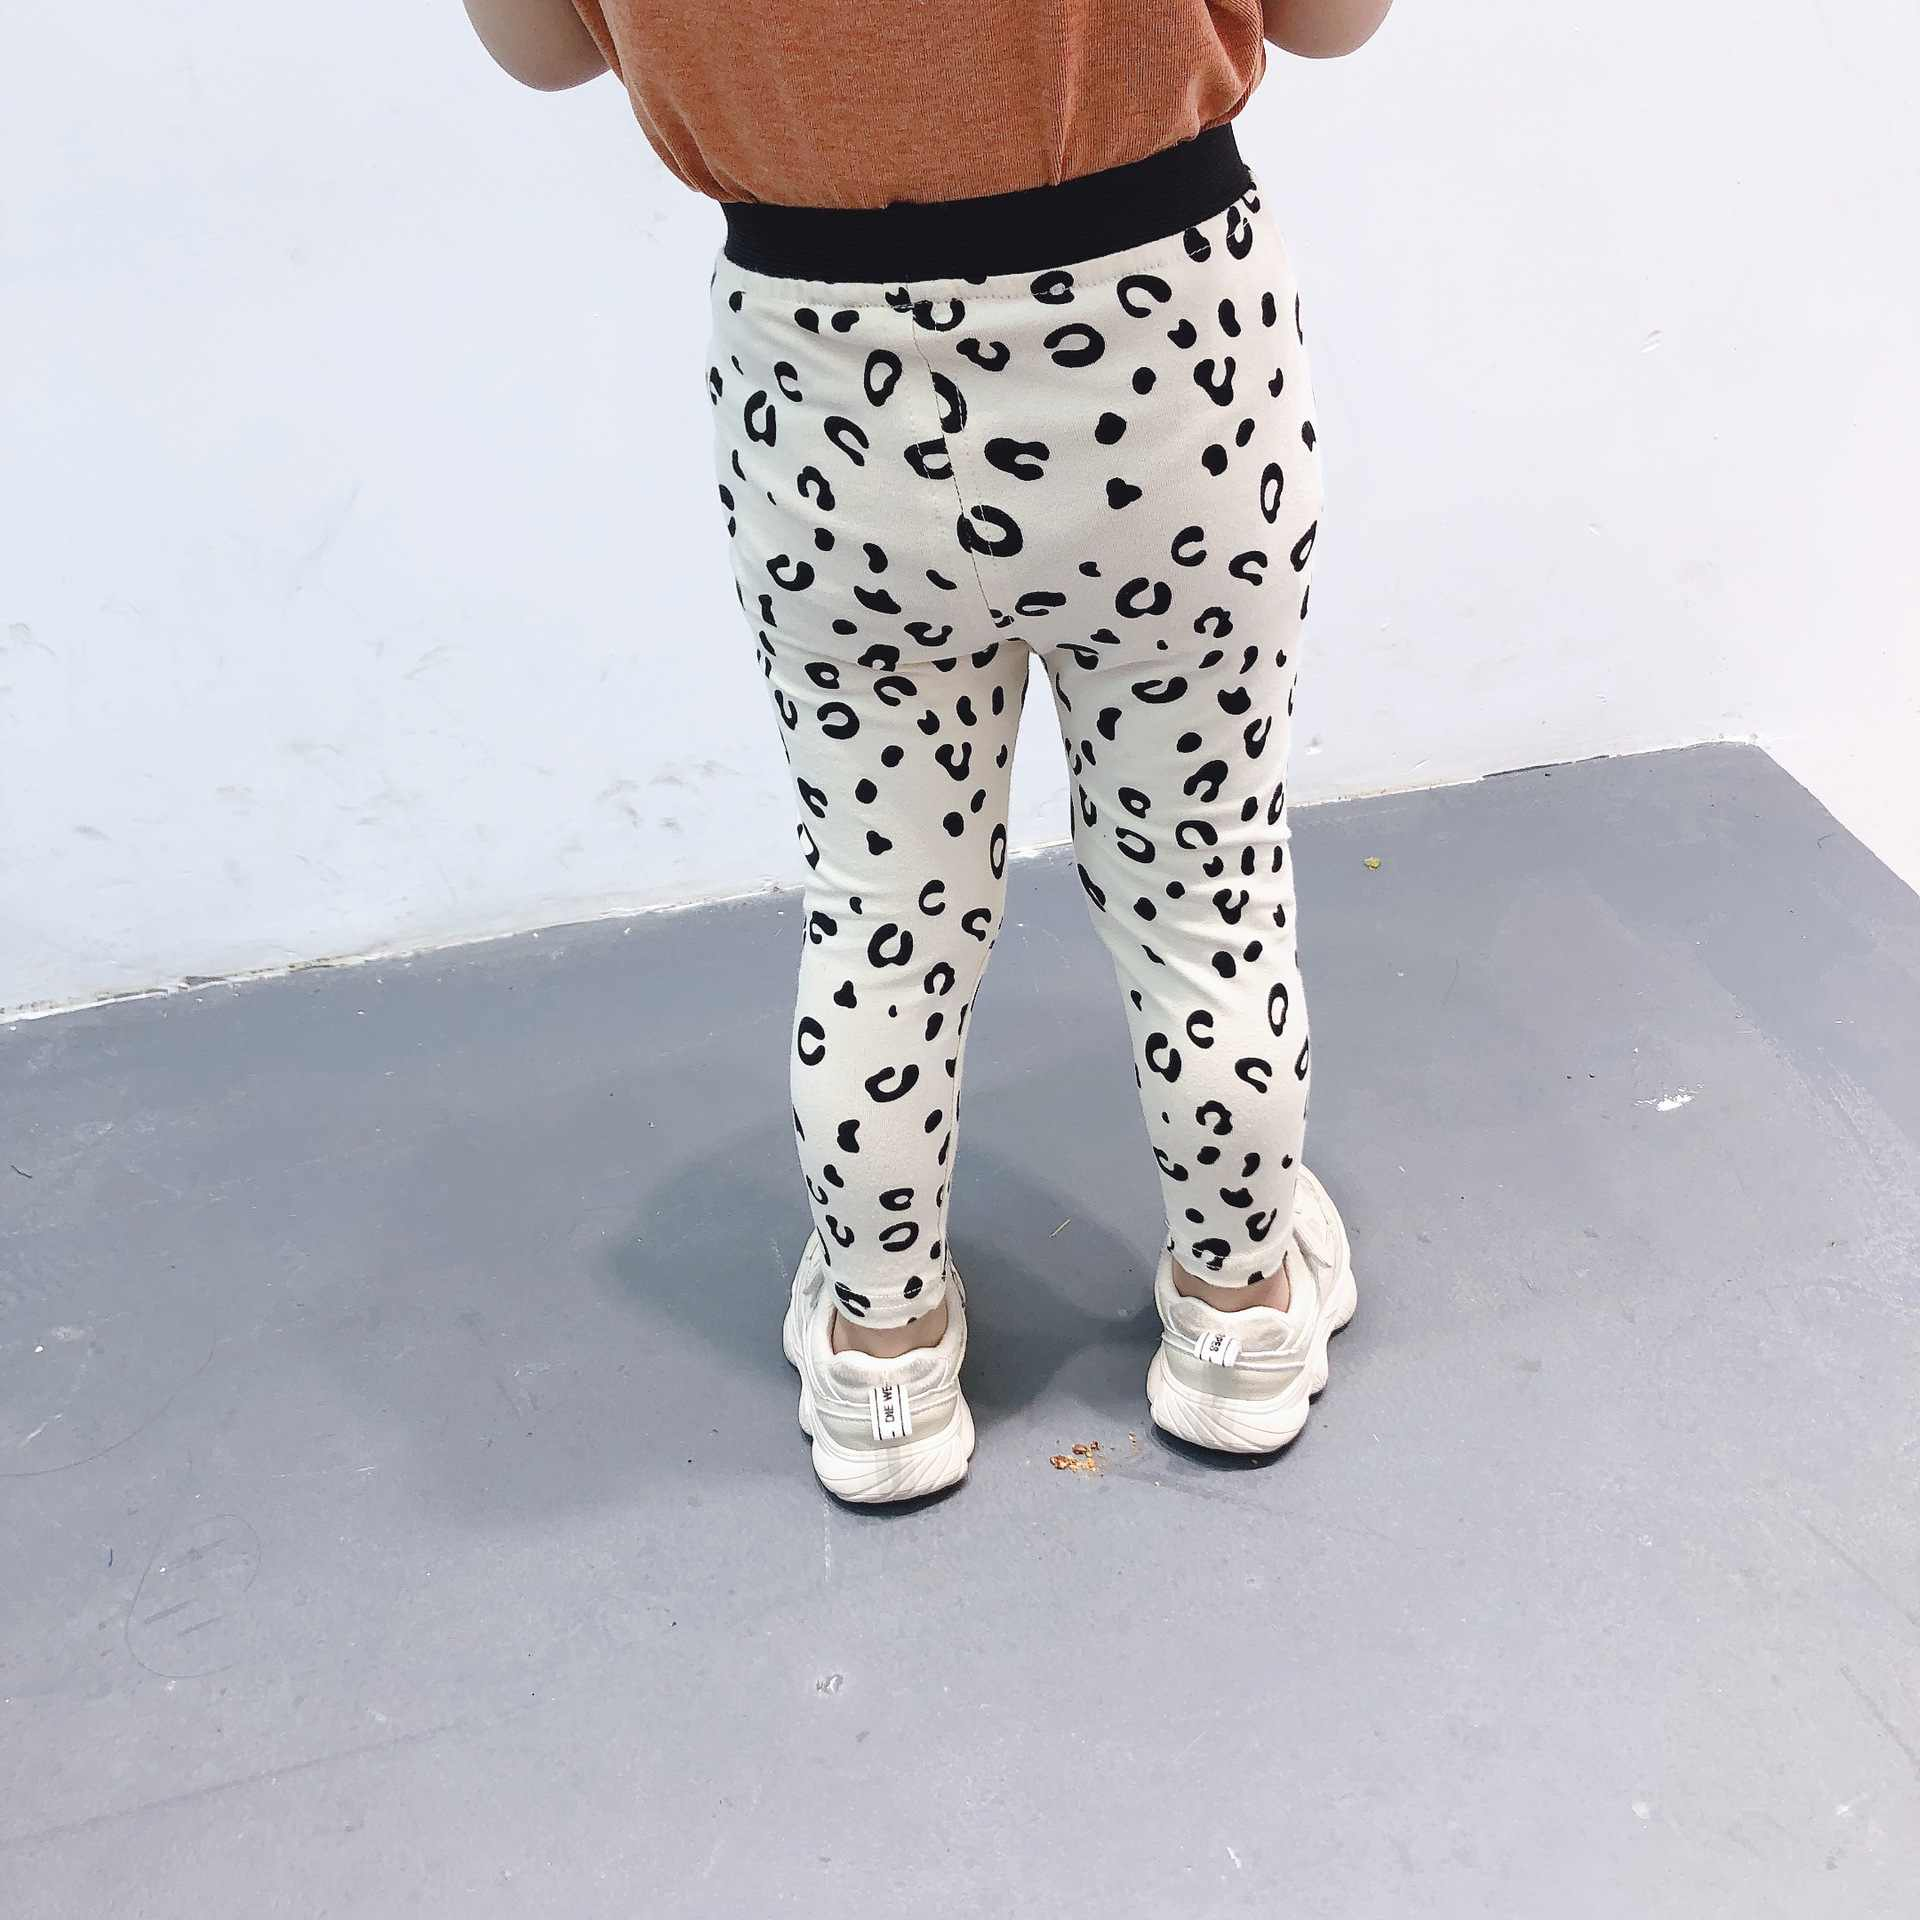 f9a78cee377d59 ... 2019 Spring and Summer Kids New Leopard Print Leggings Boys and Girls  Cotton Infants Bottoming Pants